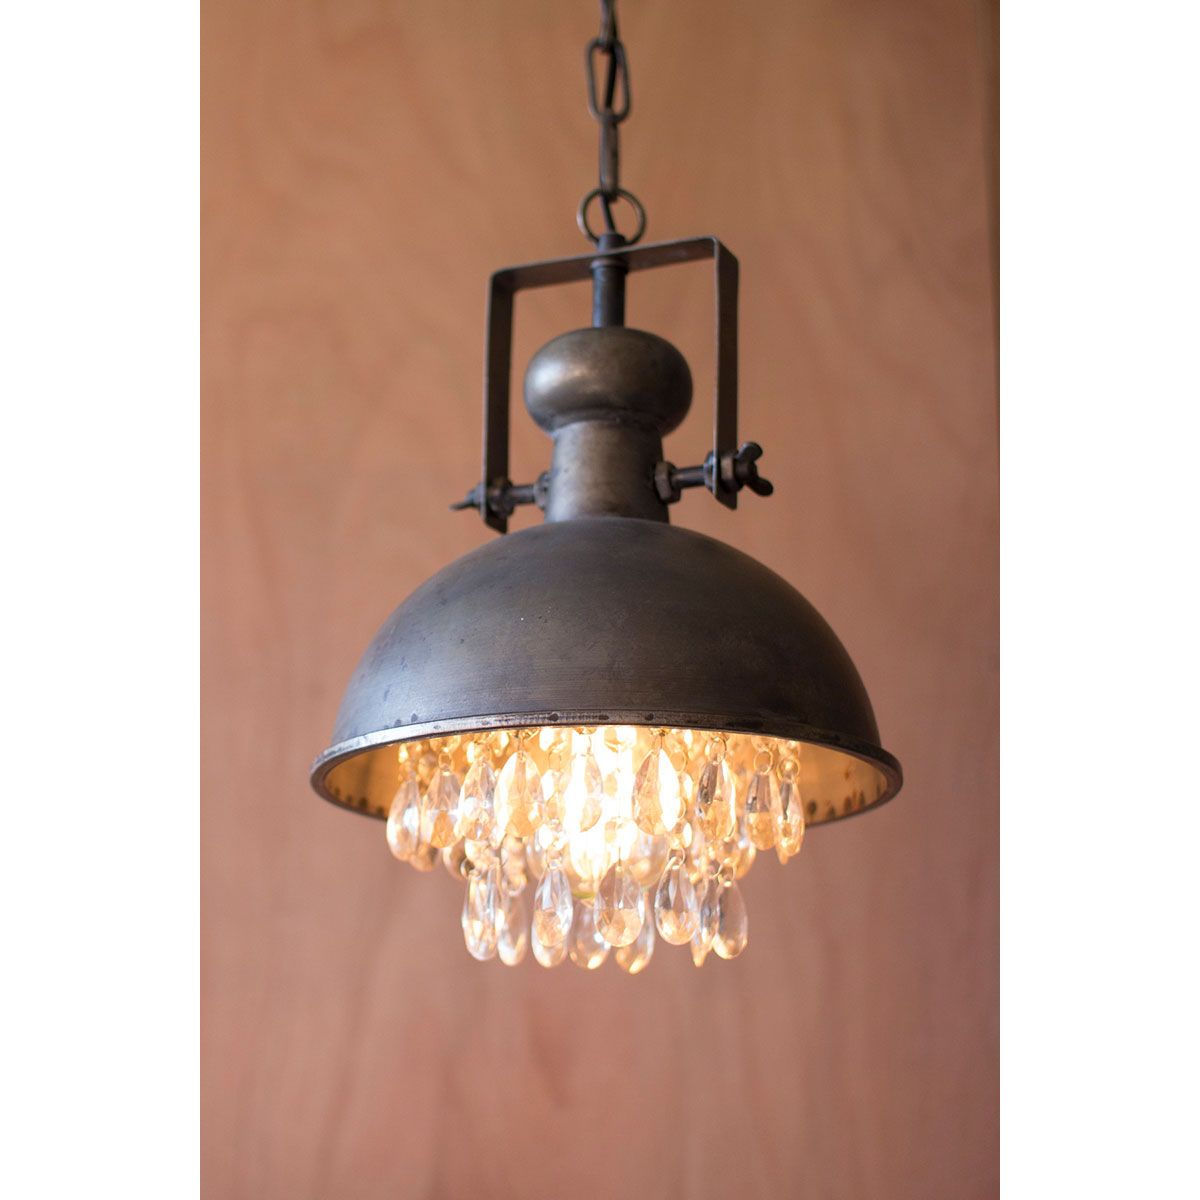 Industrial fashionista pendant furnishings pinterest bathroom